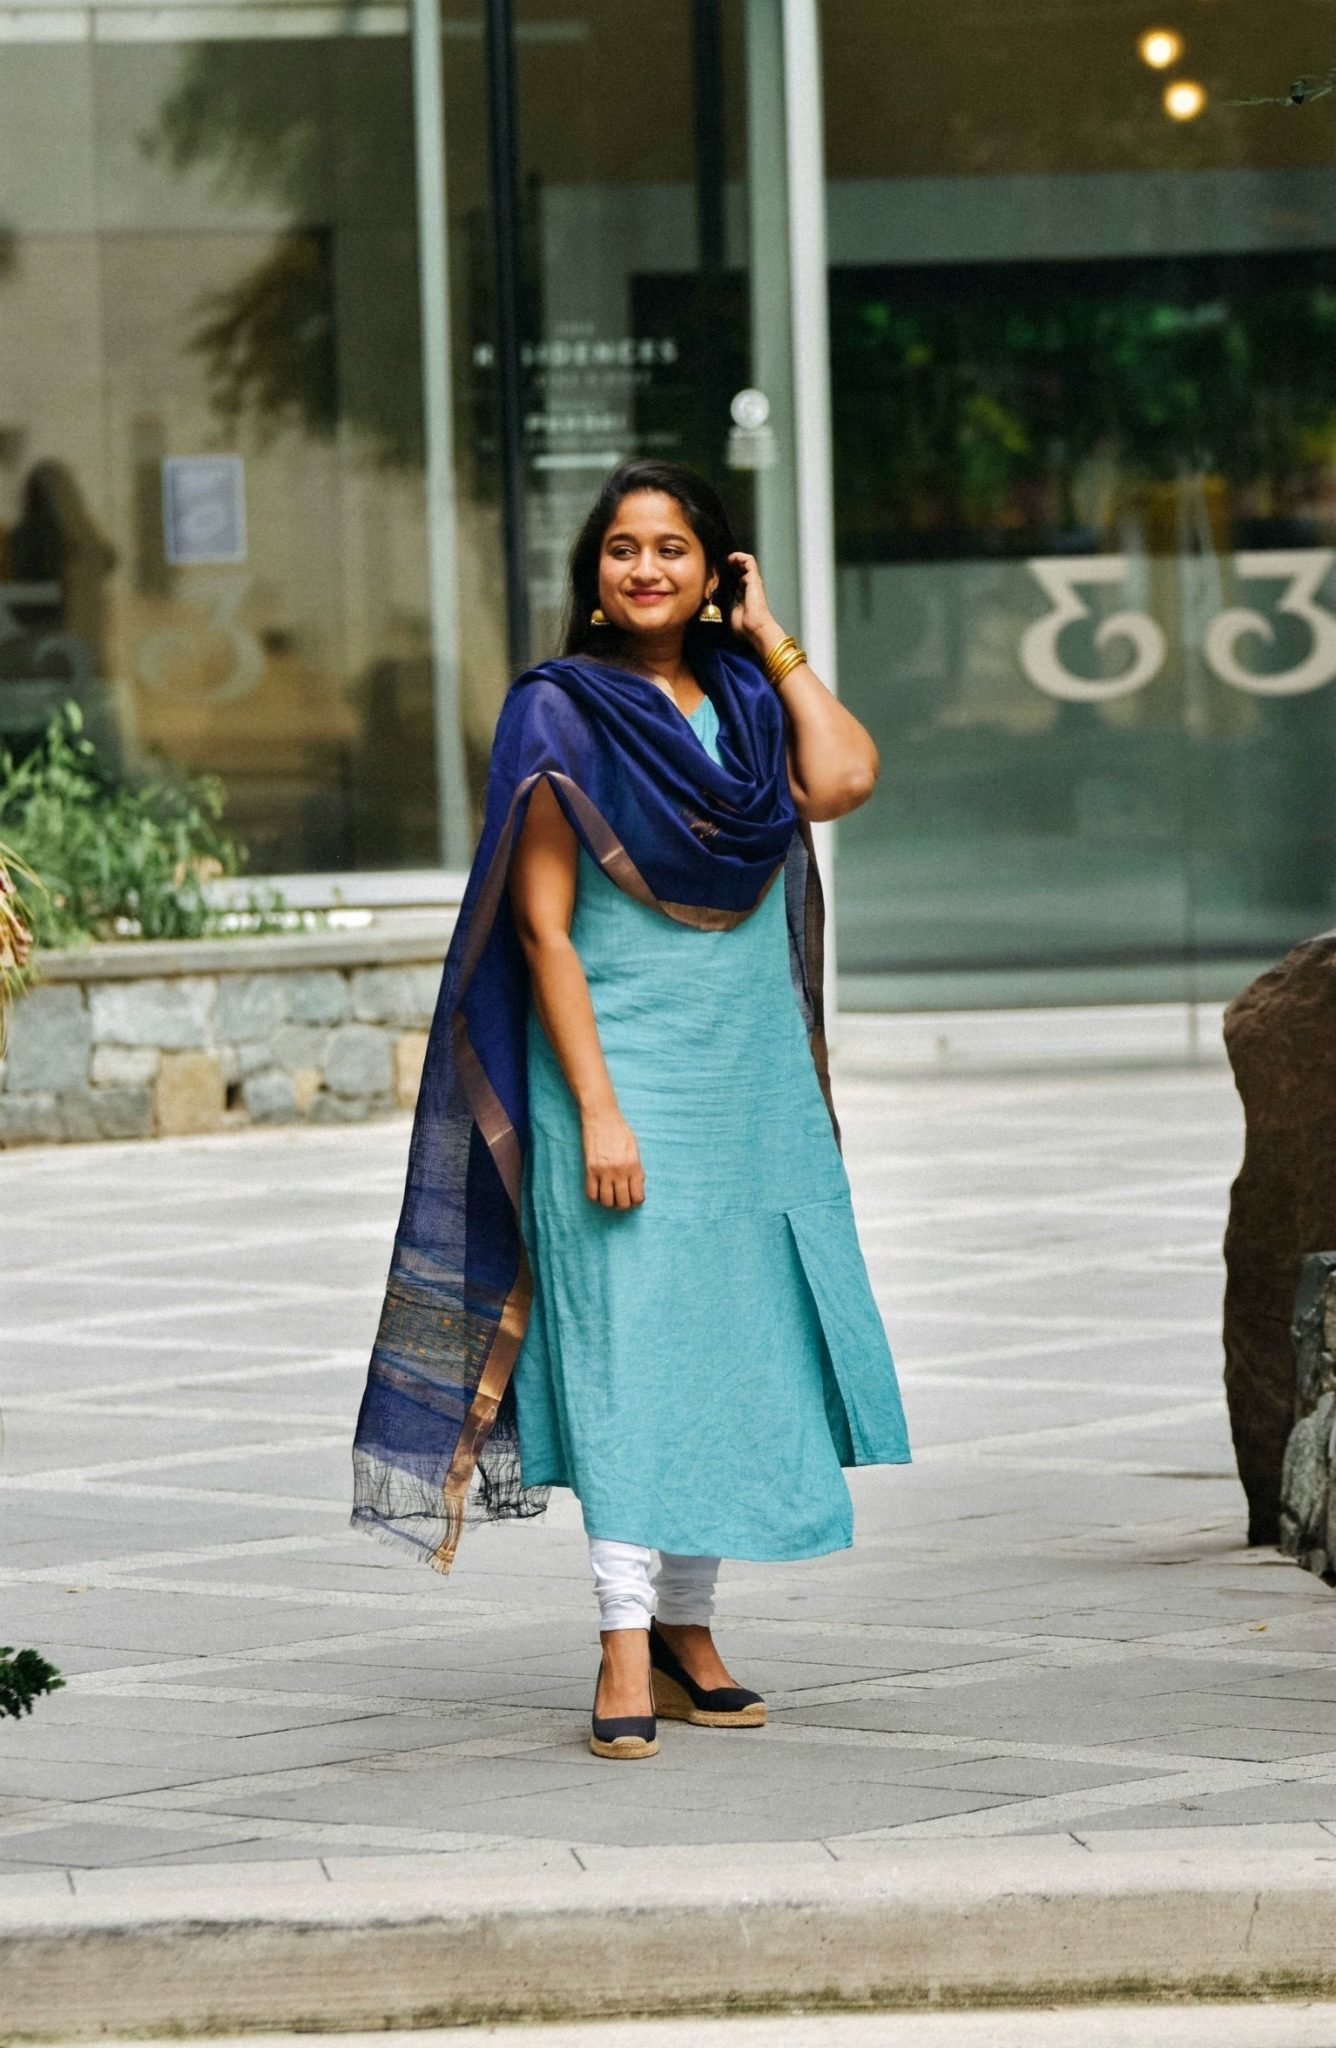 Indo-western outfit with linen dress-Wearing J.Jill Linen & Rayon Asymmetric Dress, white cotton Chudidar pant, Royal blue silk dupatta 11 | Indo Western by popular Maryland modest fashion blog, Dreaming Loud: image of a woman wearing an Indo Wester outfit with a chudidar, blue silk dupatta, blue linen dress, and gold jhumkas.